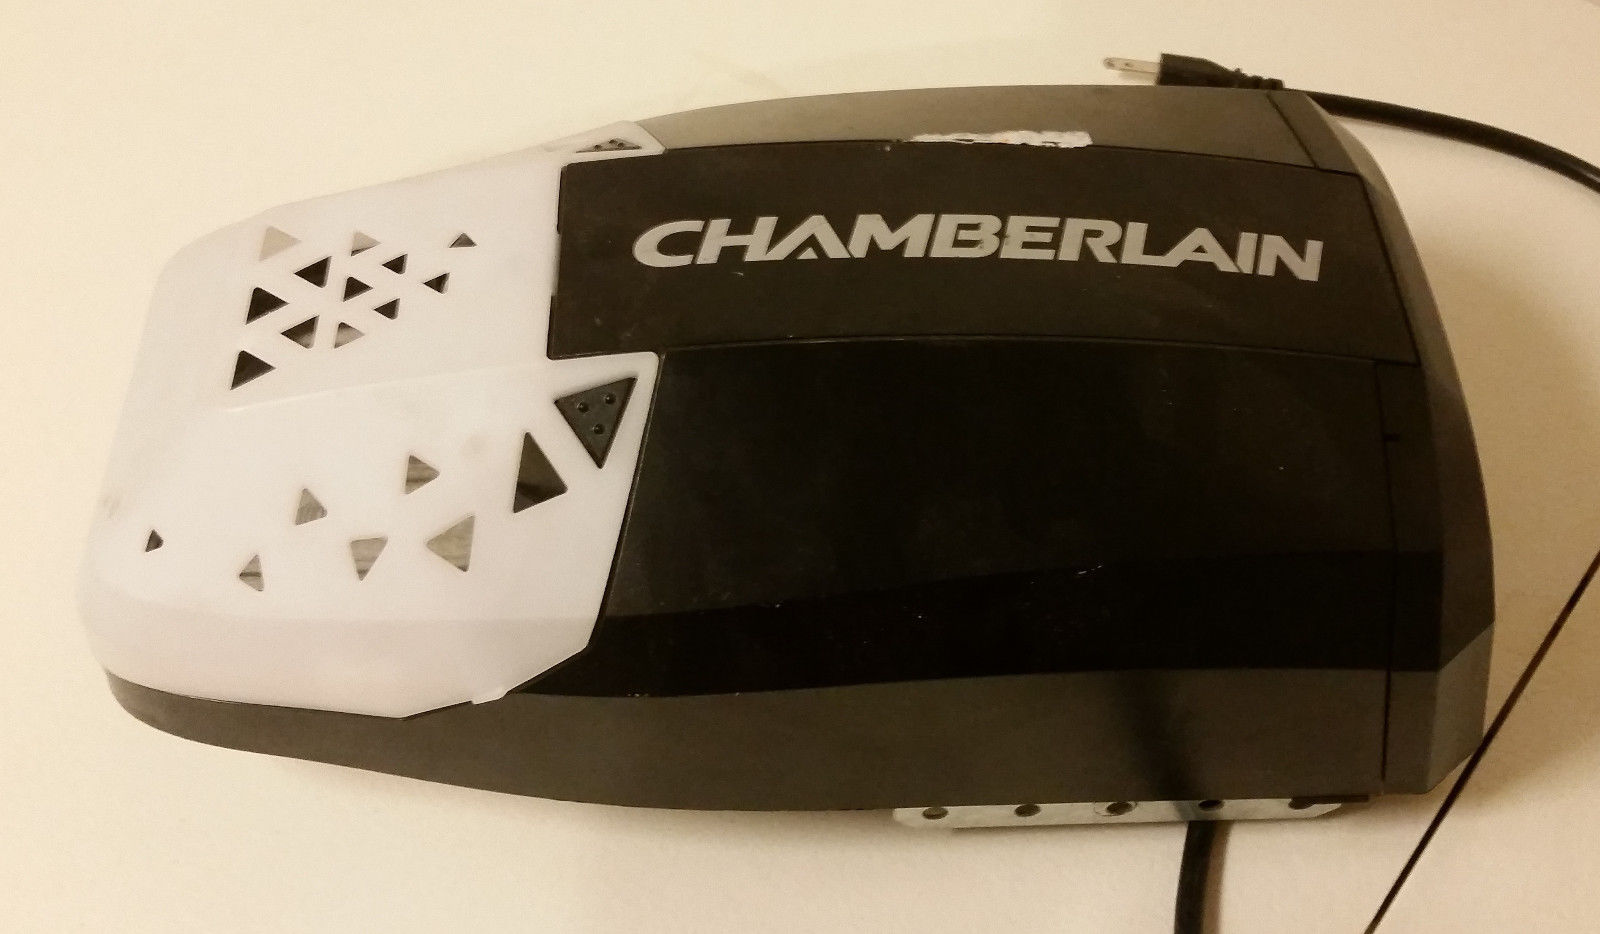 Chamberlain Group PD220 1/2-HP Chain Drive Review